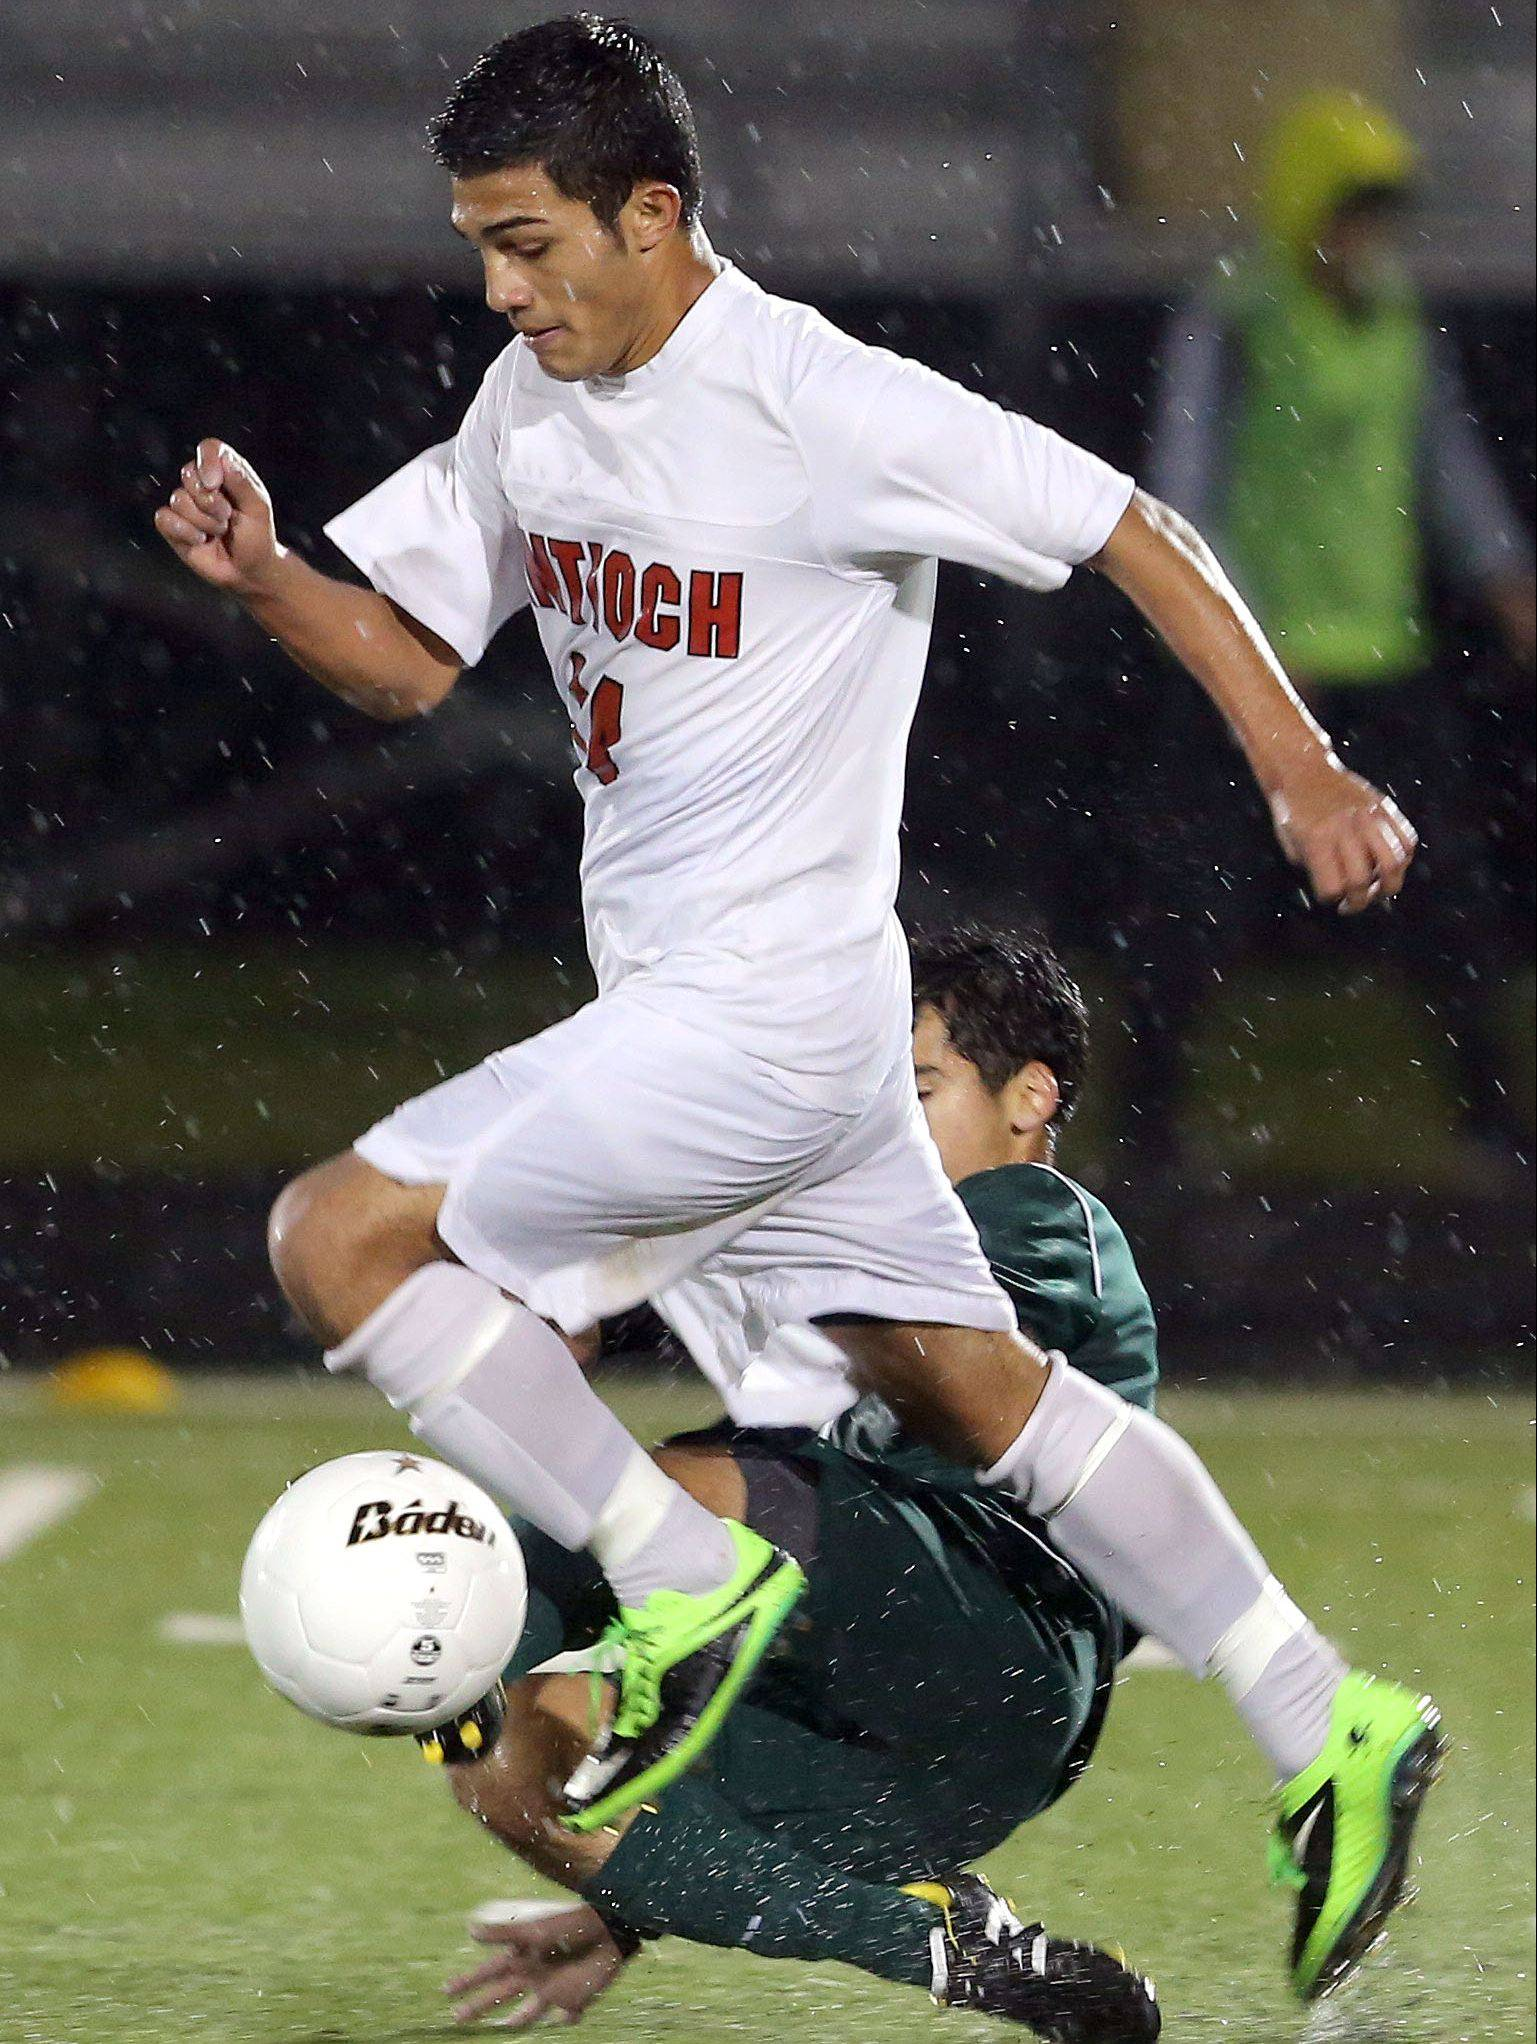 Antioch's Iven Hernandez drives down the field in Class 3A sectional semifinal play against Grayslake Central on Wednesday at Grayslake North High School.